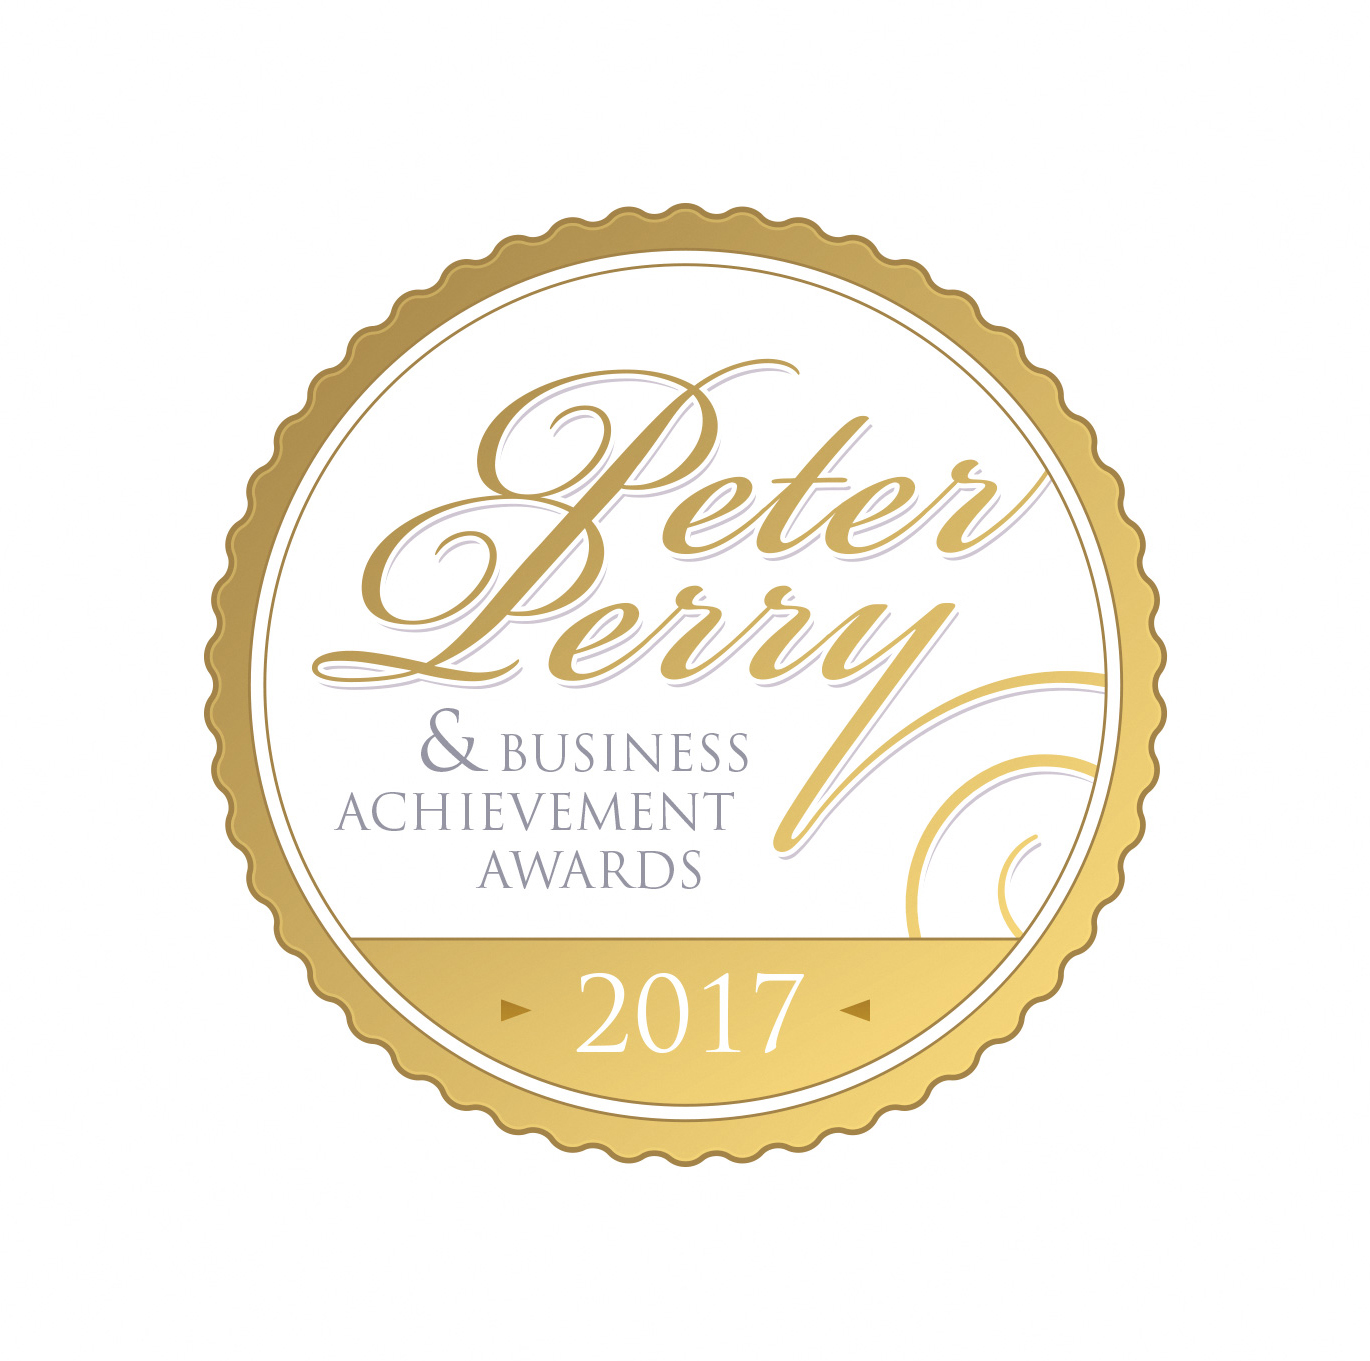 Peter Perry Logo